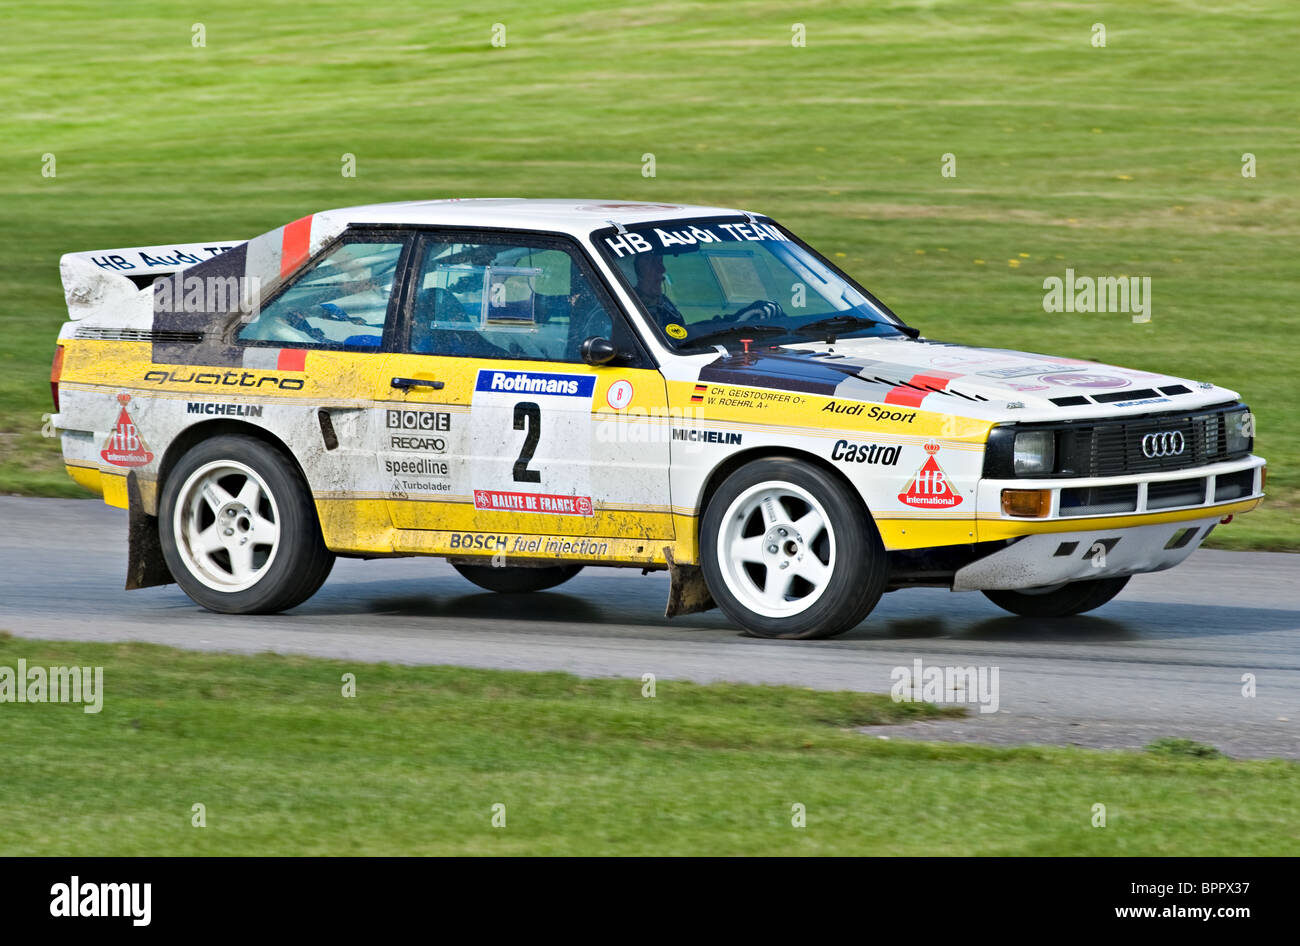 audi quattro group b historic rally car on track at oulton park motor stock photo royalty free. Black Bedroom Furniture Sets. Home Design Ideas